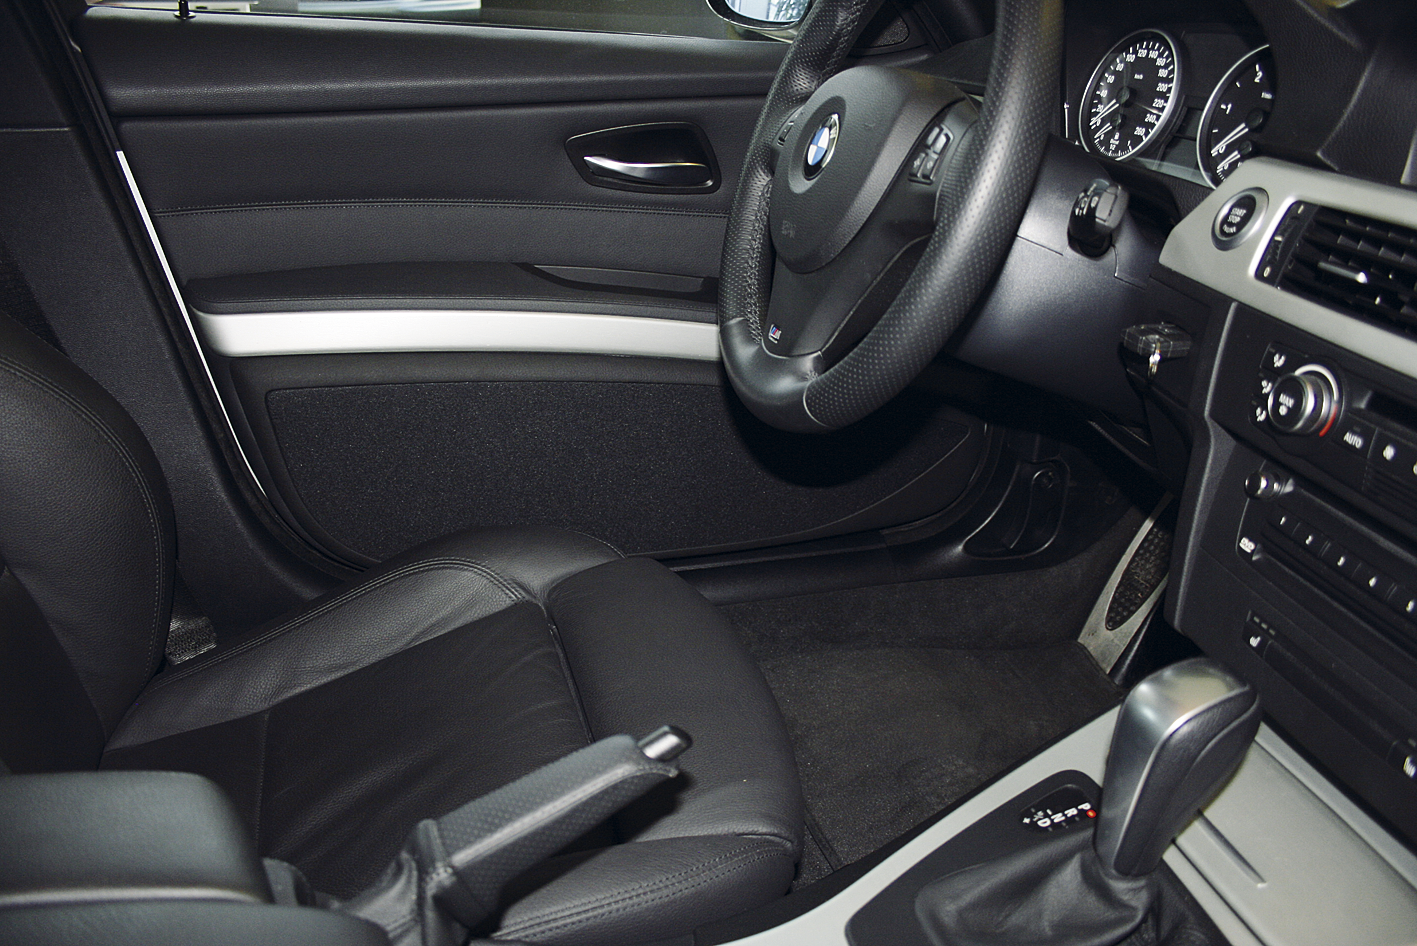 Bmw 3 Series E90 91 Doorboards With 3 Way Soundsystem